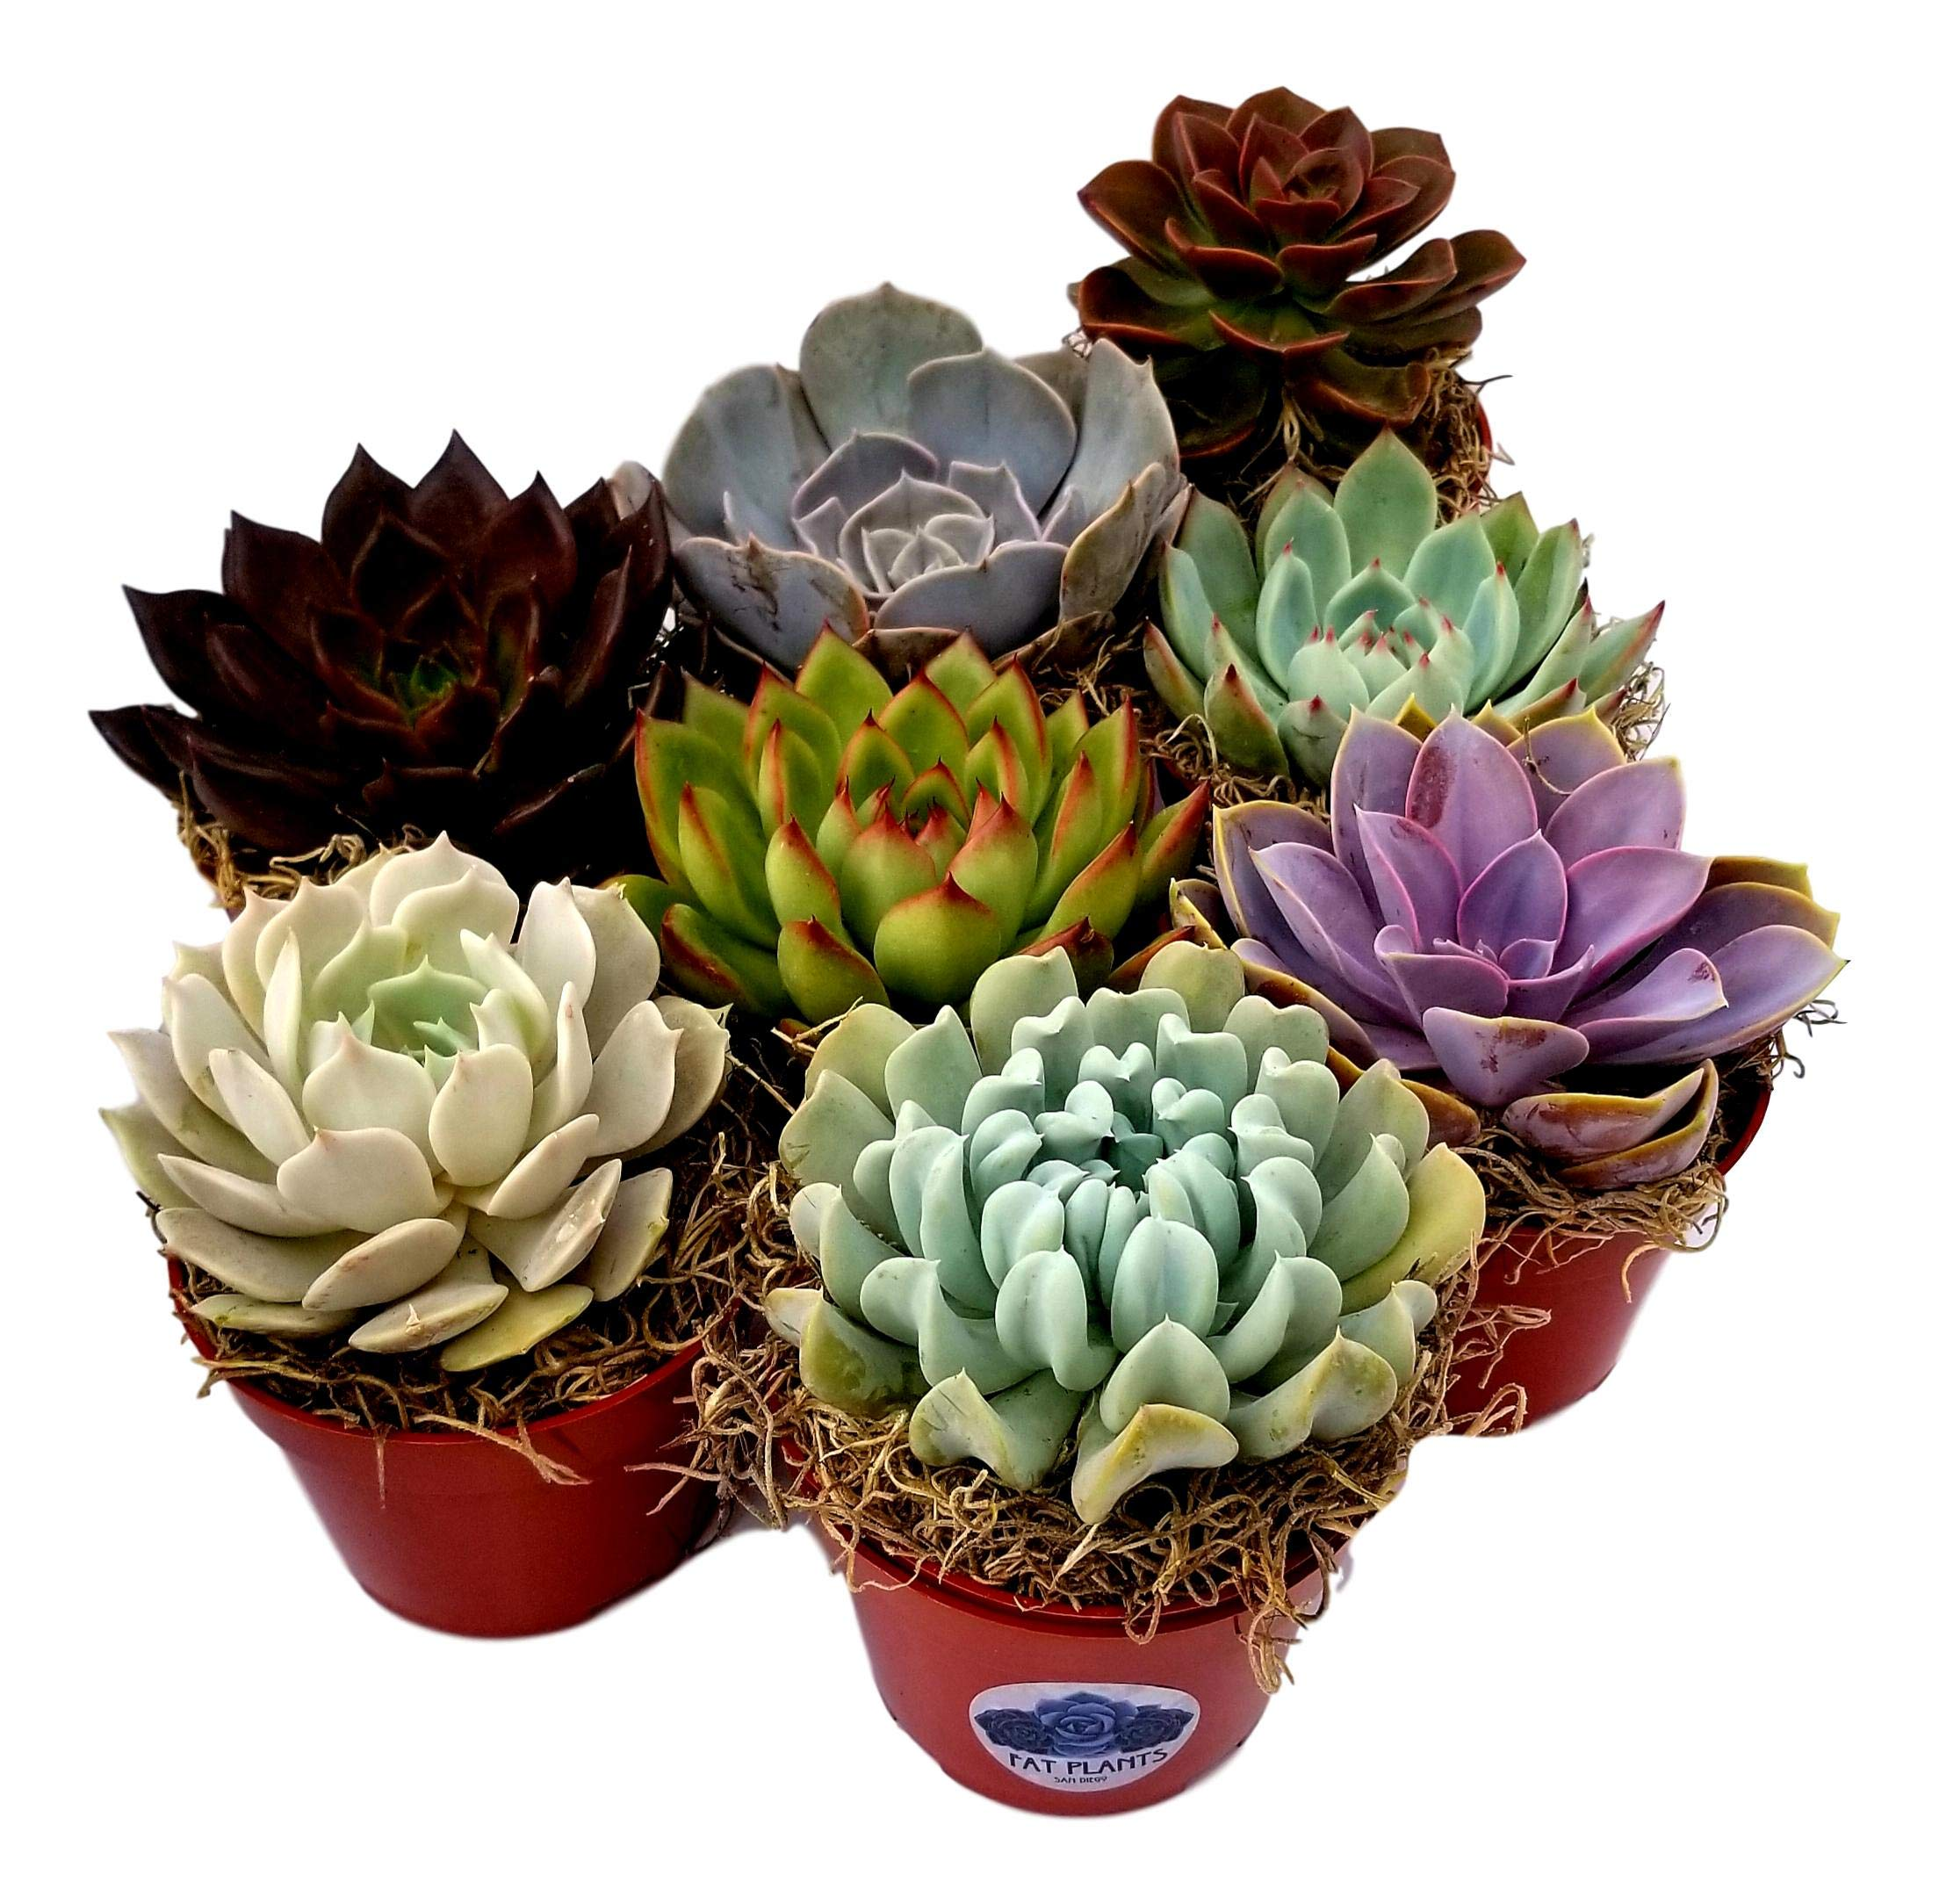 Fat Plants San Diego Large Rosette Succulent Plant Collection in Plastic Growers Pots